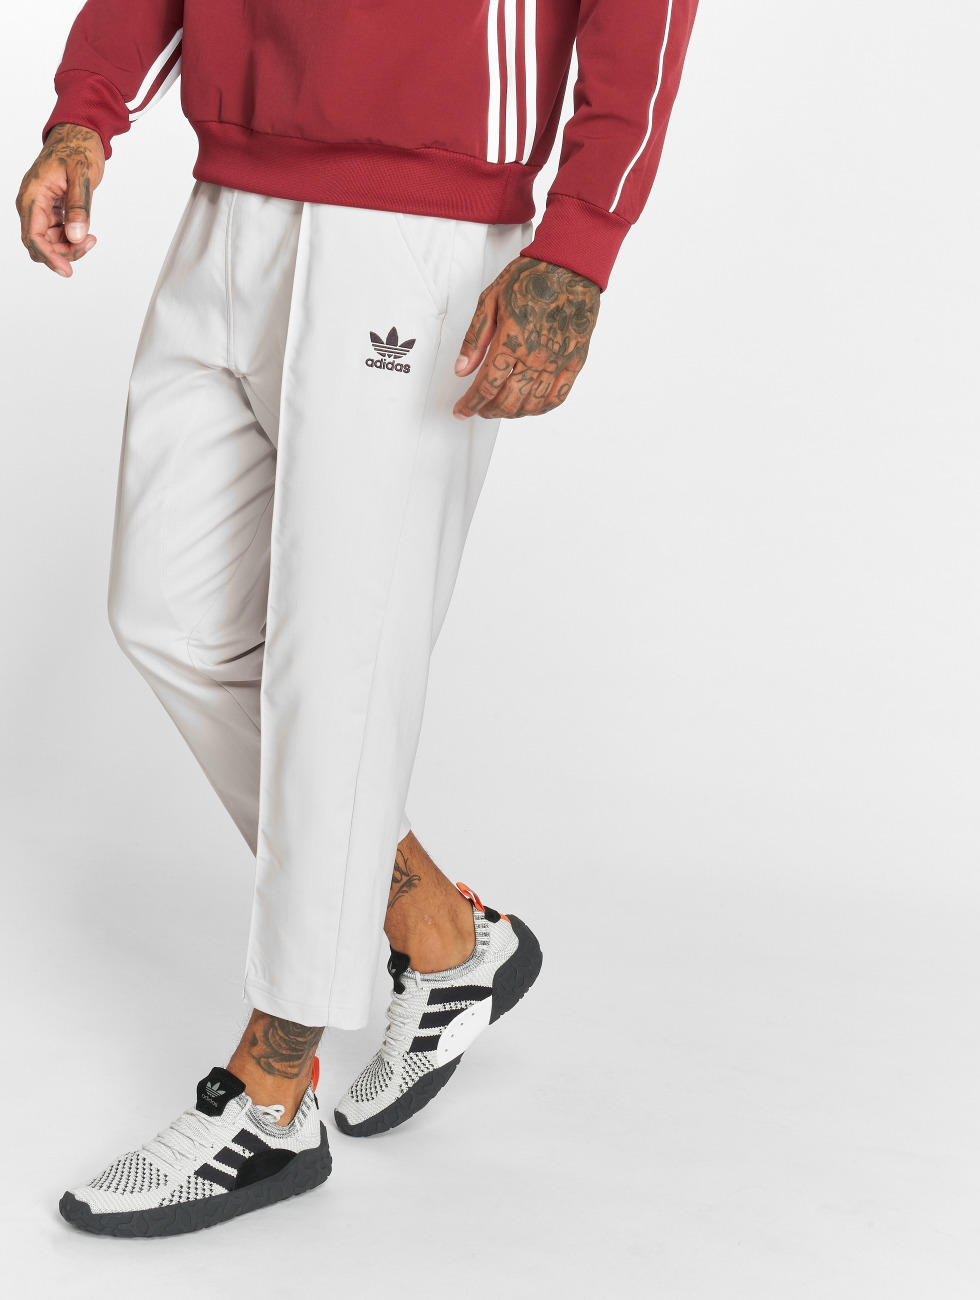 adidas originals Chino pants 7/8 beige